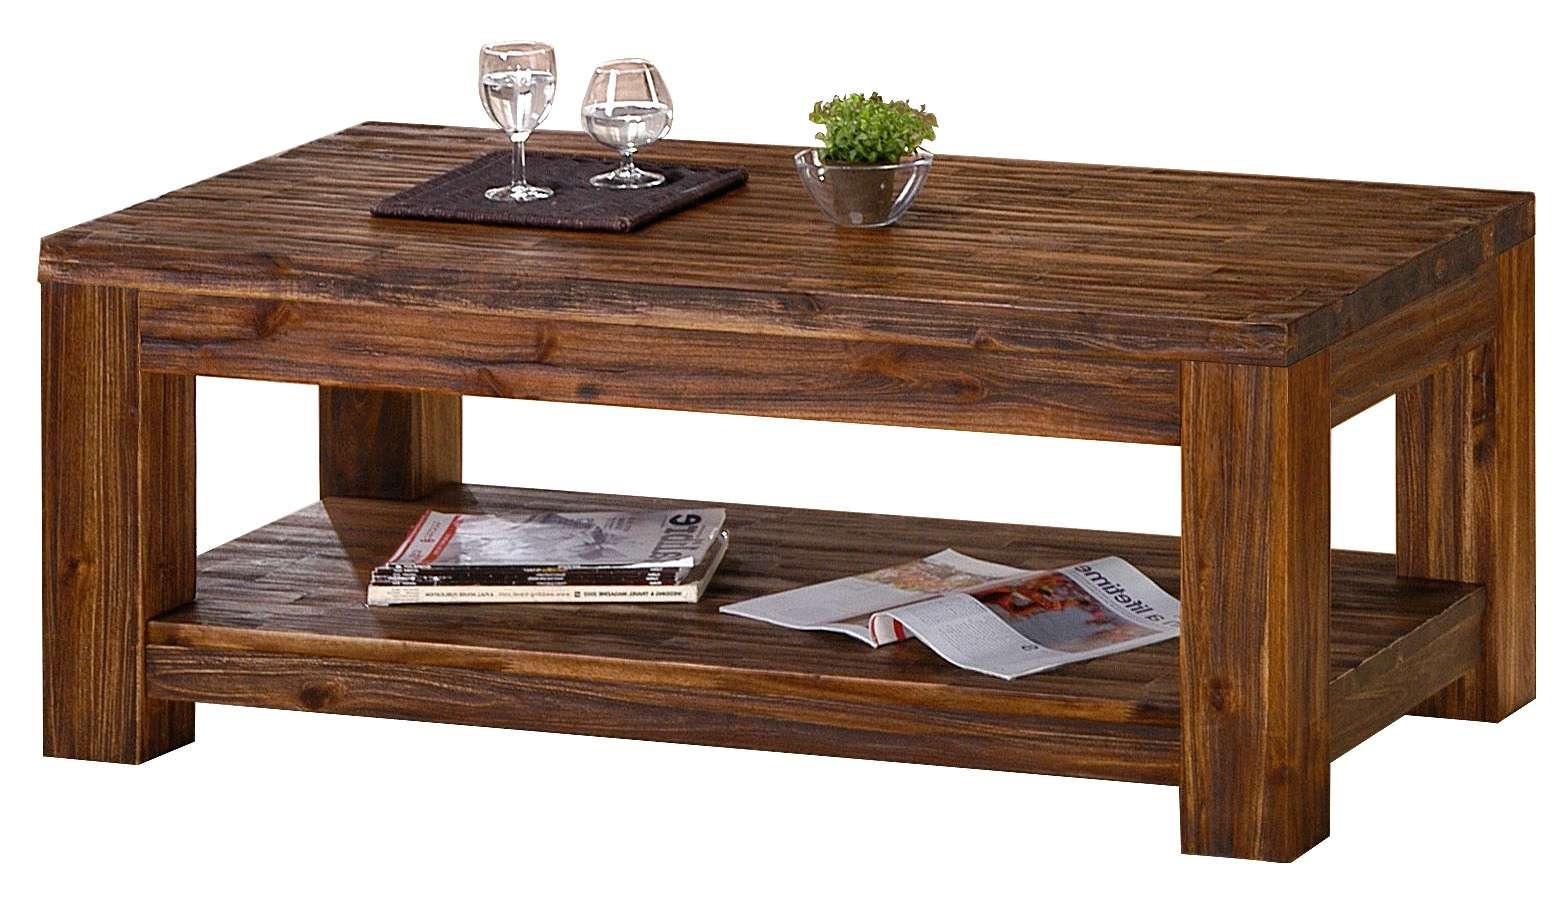 Acacia Wood Coffee Table – Mfp Furniture In Recent Dark Brown Coffee Tables (View 18 of 20)